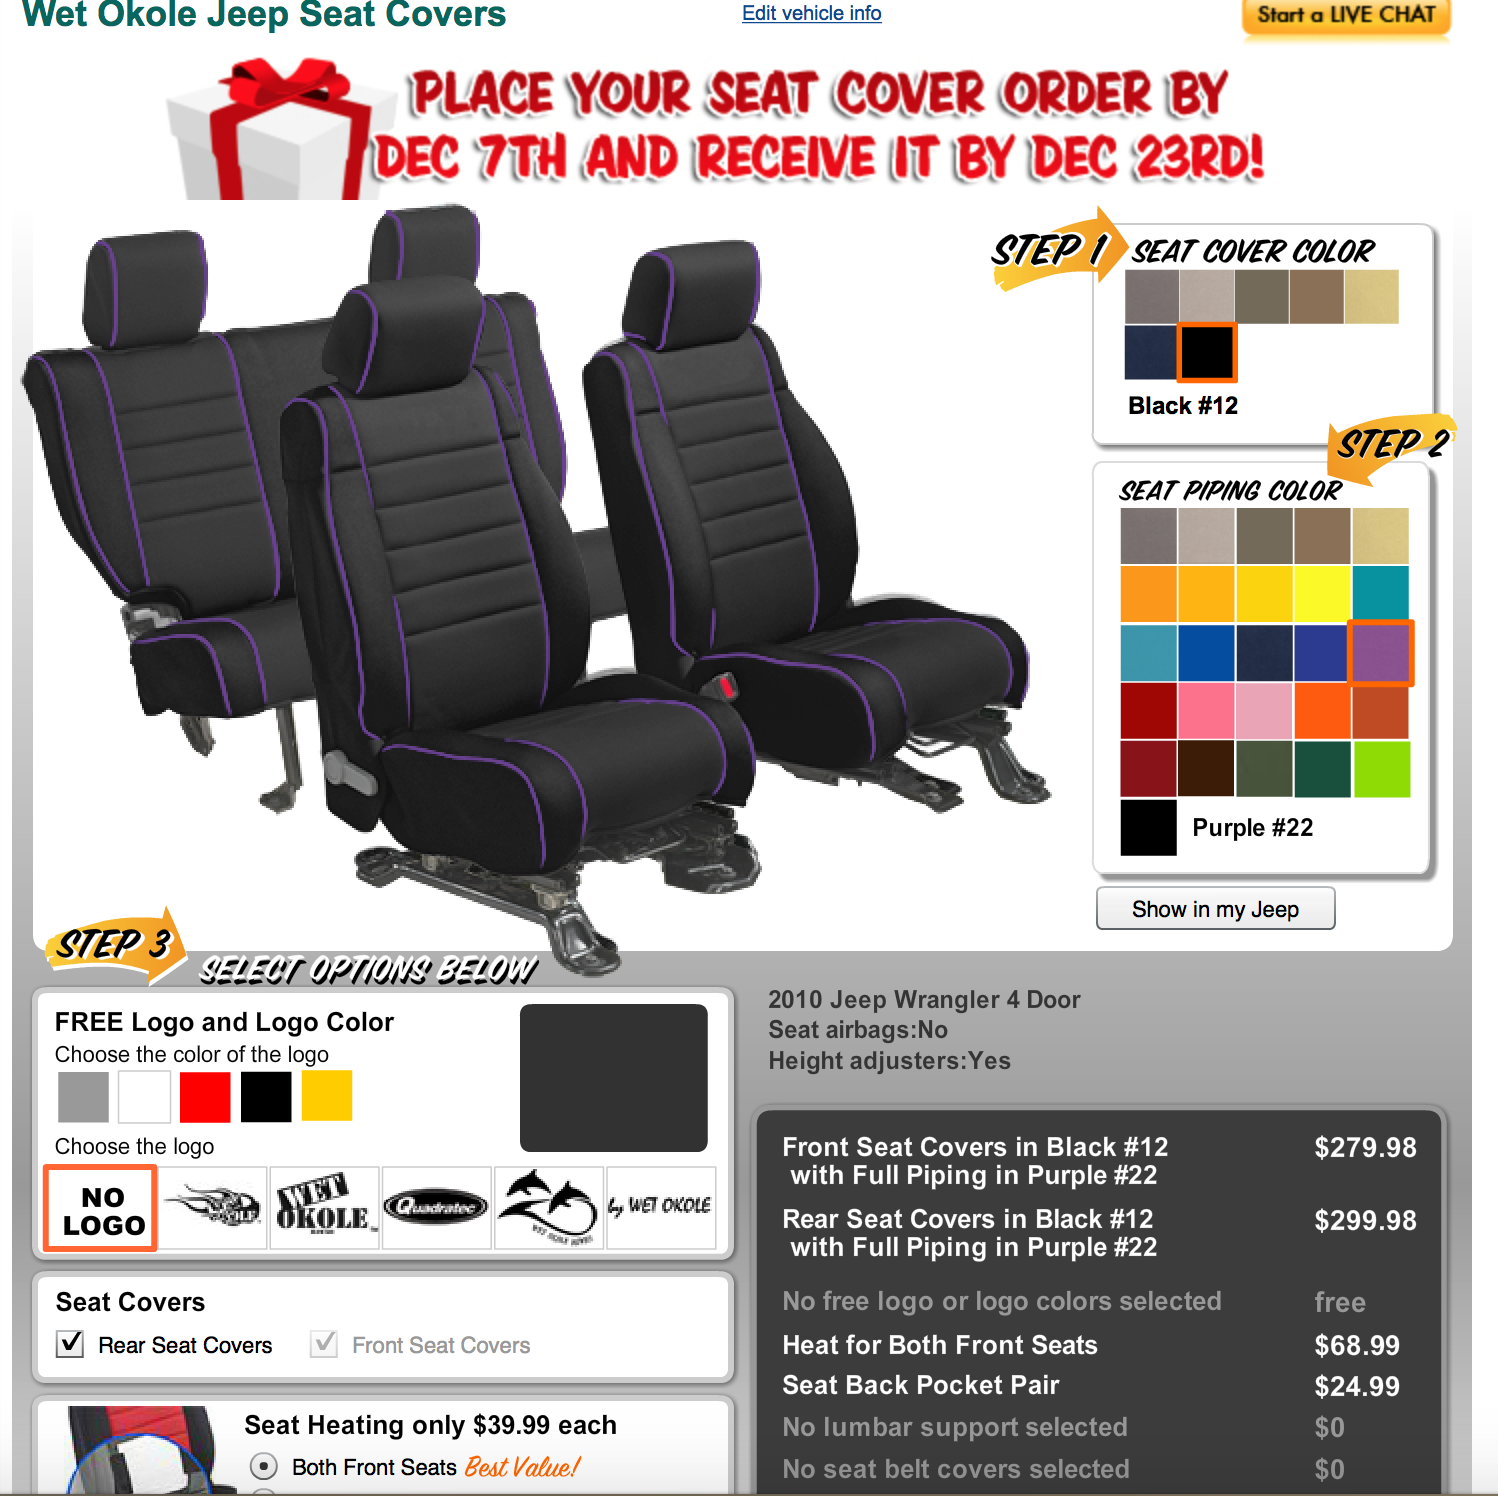 Wet Okole Jeep Seat Covers Black with purple piping, seat